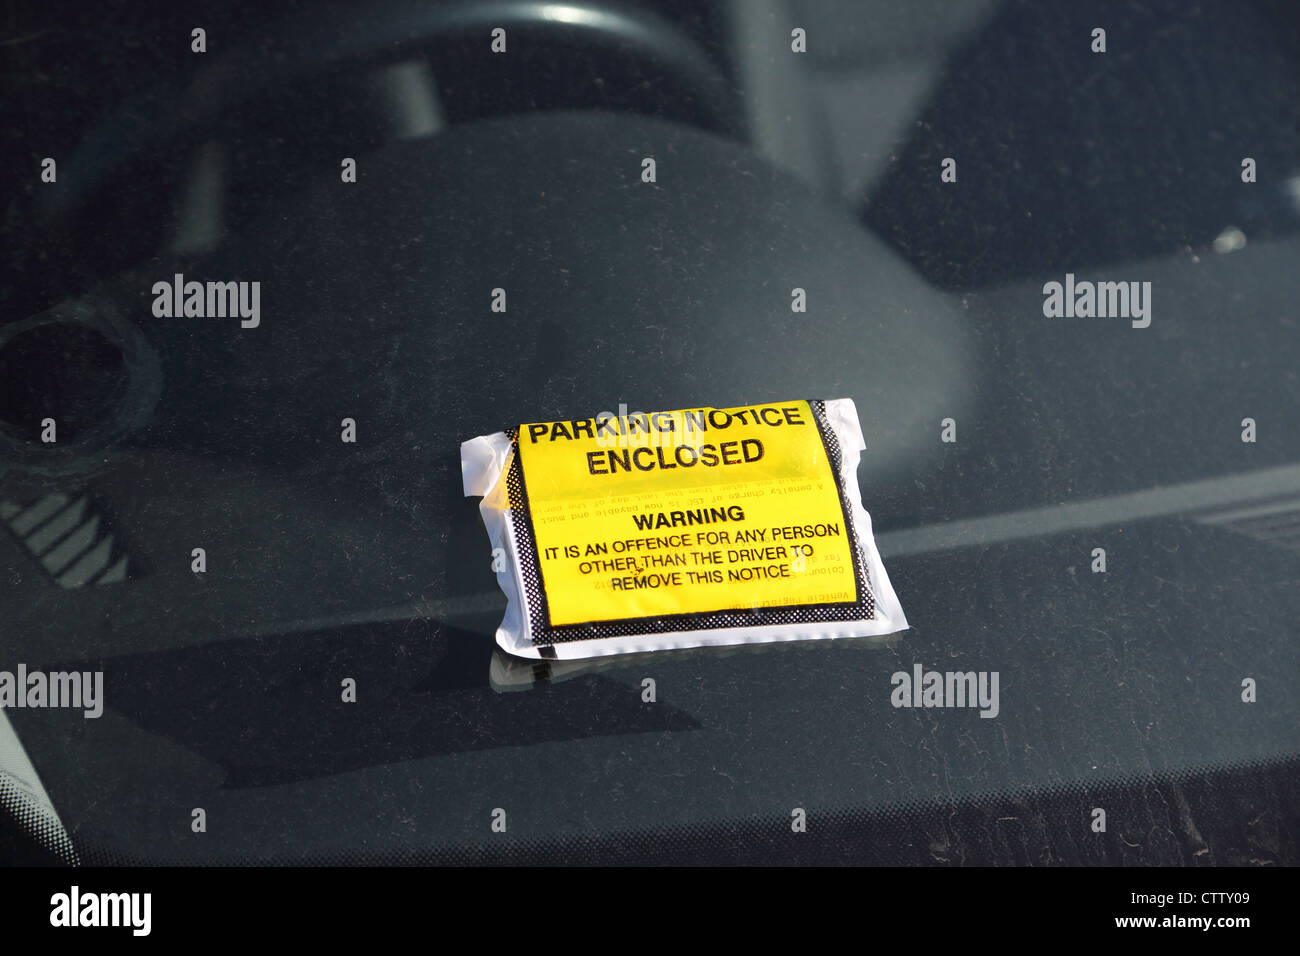 A parking violation notice has been placed onto a cars dirty windscreen. - Stock Image